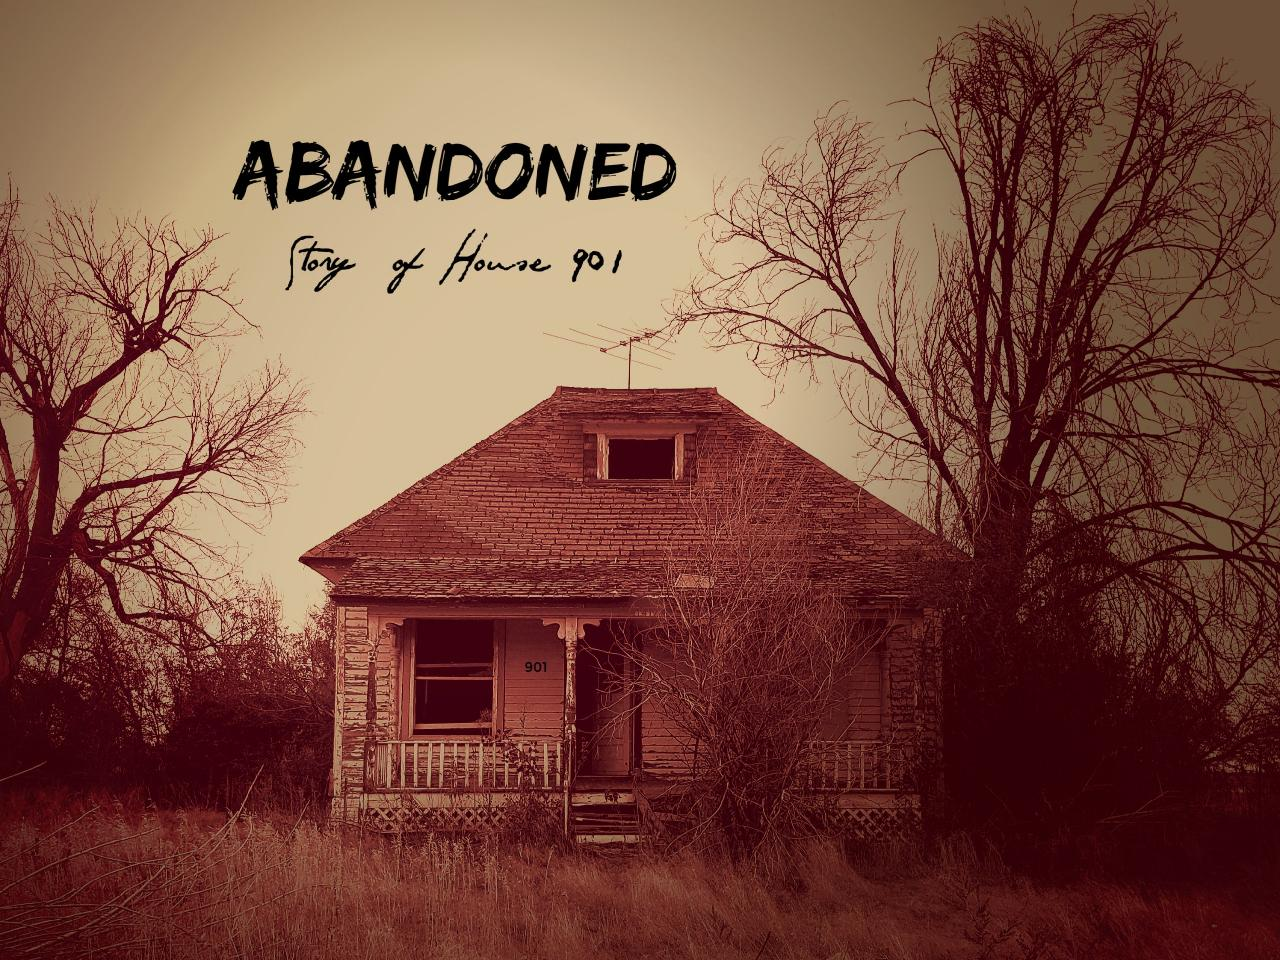 Abandoned: The story of house 901 <br />